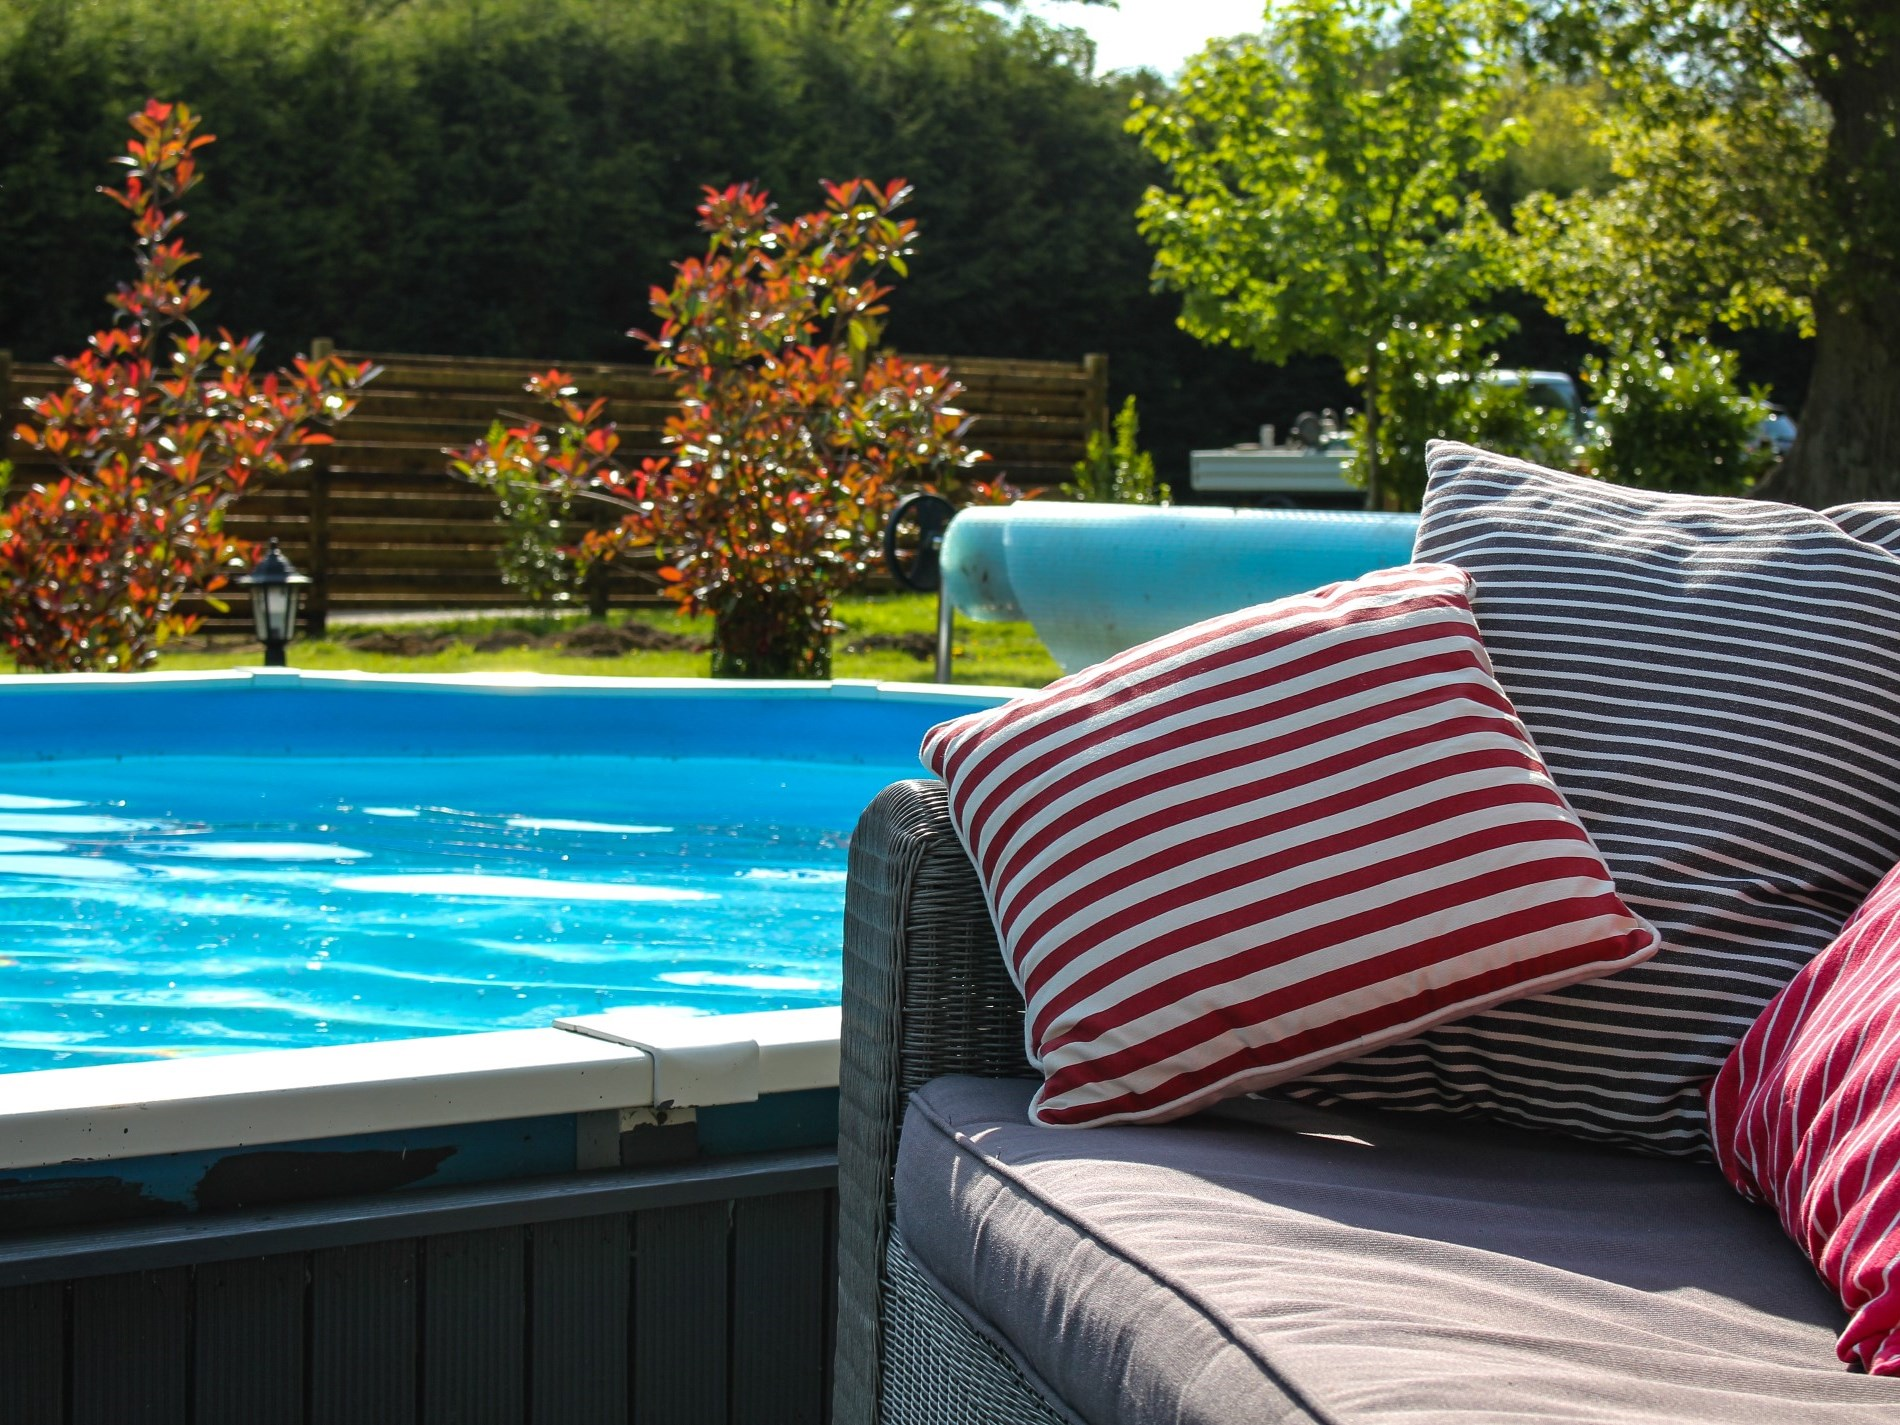 Take a dip in the pool or simply relax beside it